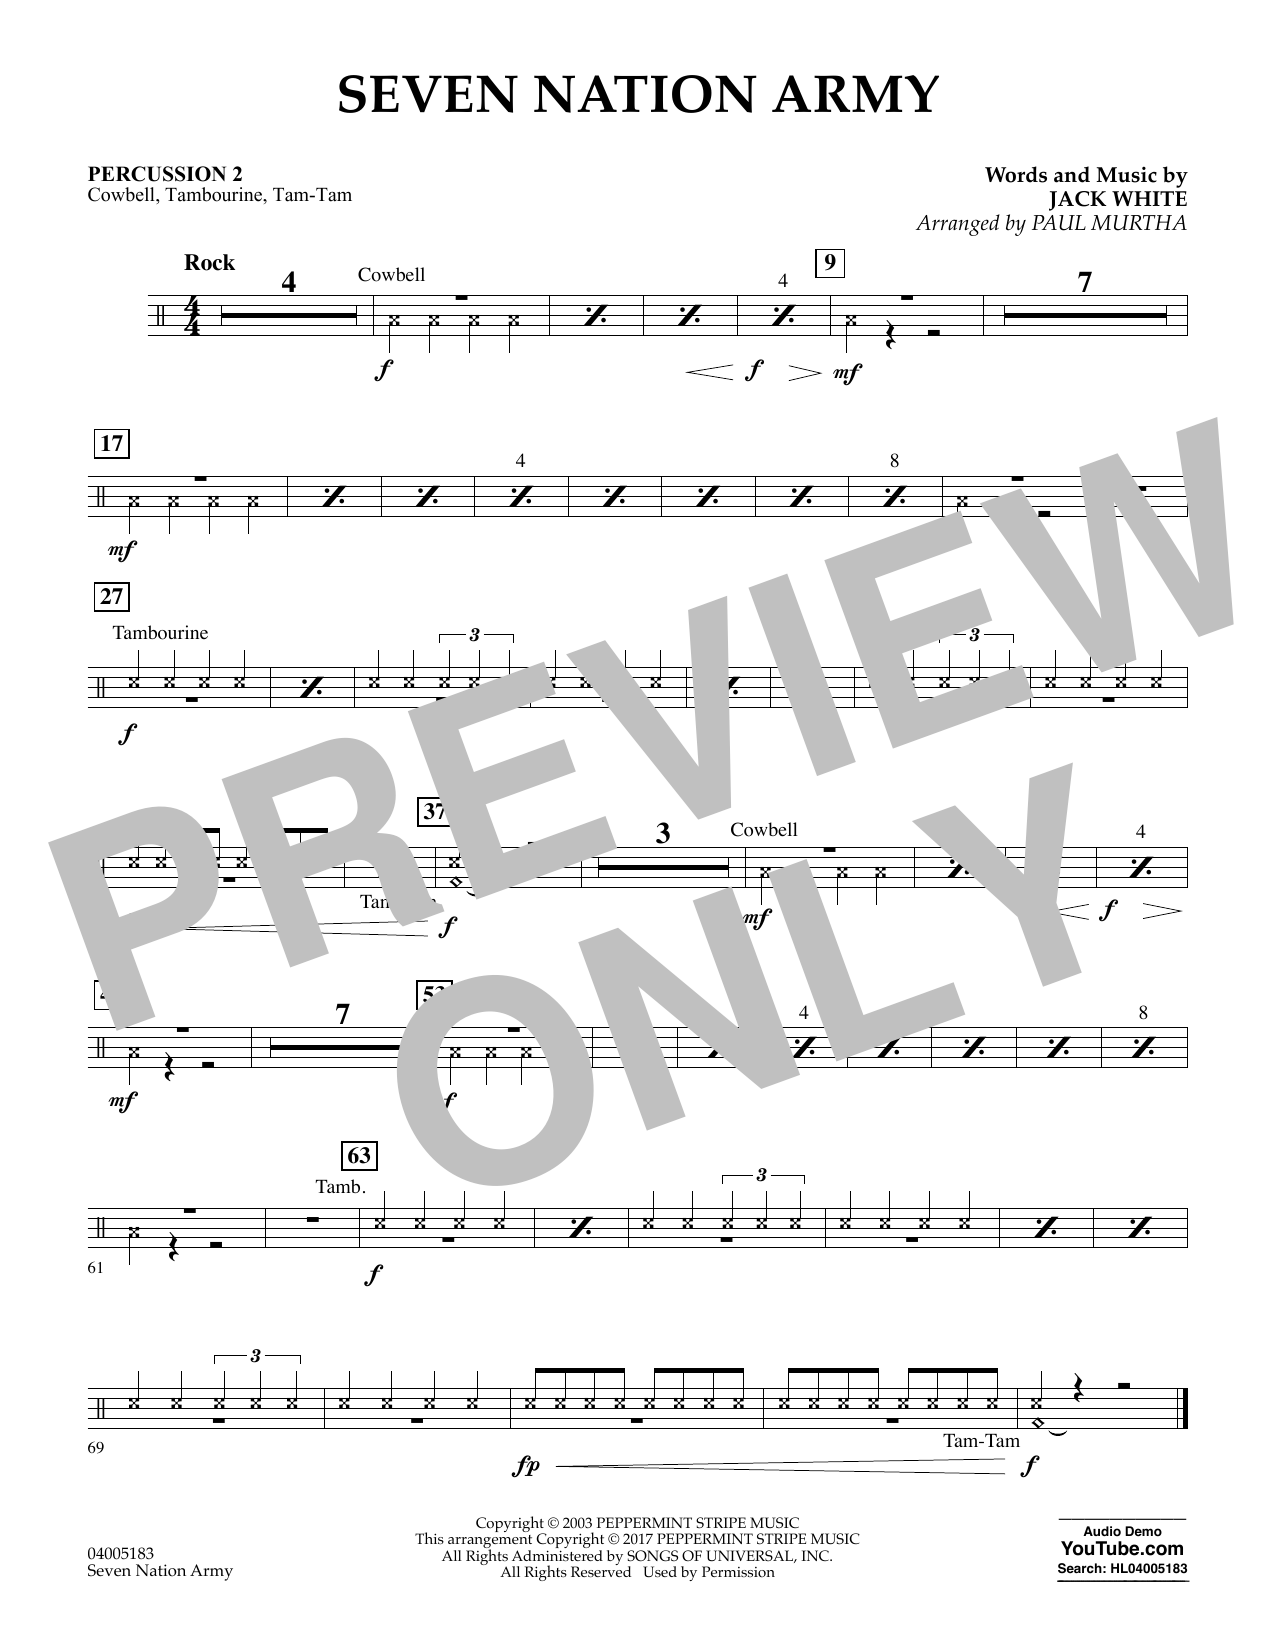 Seven Nation Army - Percussion 2 (Concert Band: Flex-Band)